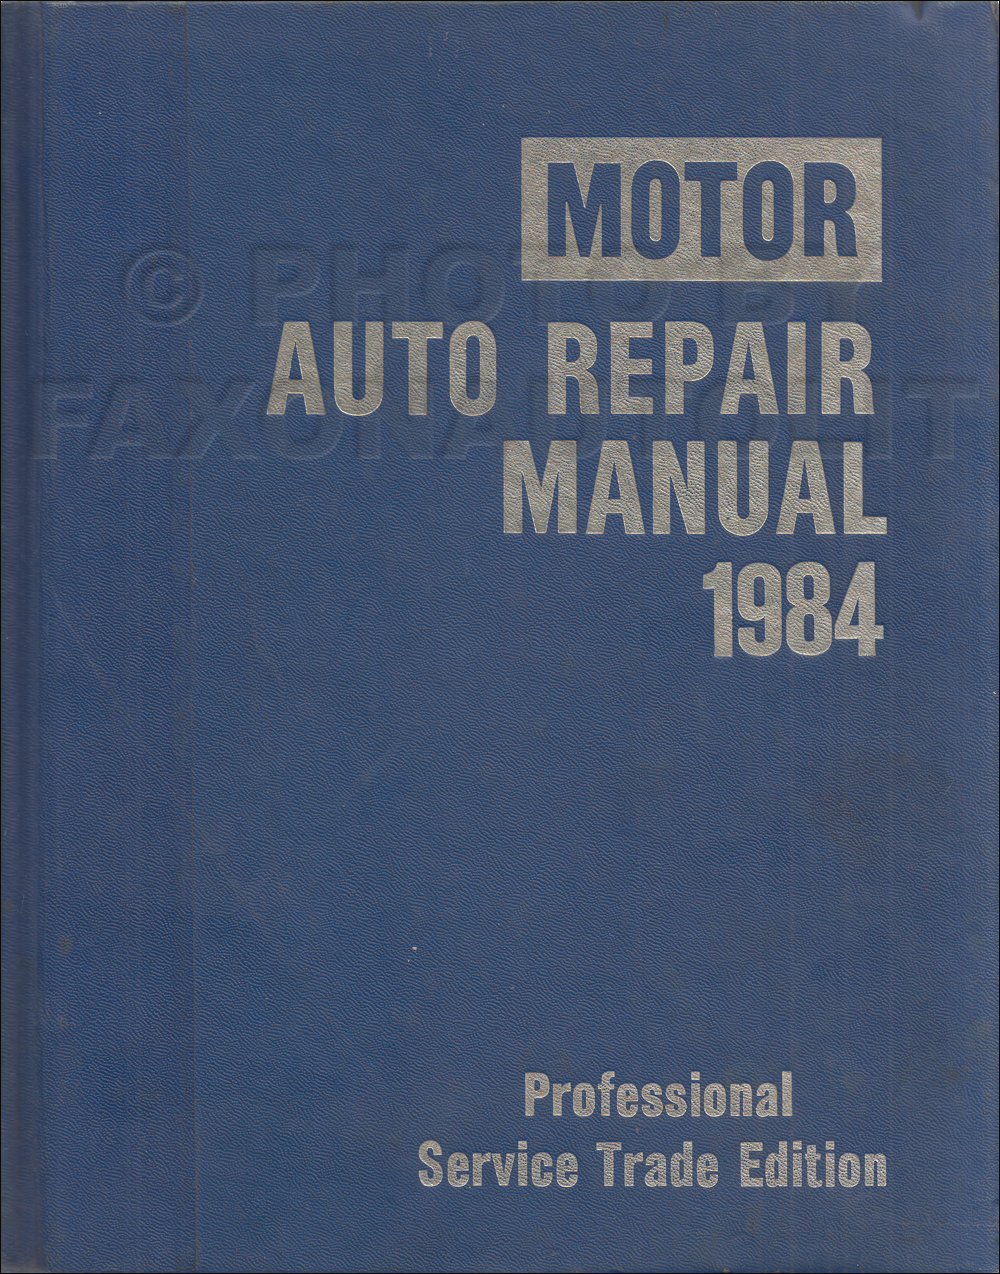 1965 1979 Hollander Us Parts Interchange Manual 1968 1969 70 71 72 Buick Skylark Gs Gsx Electra Lesabre Wiring 1977 1984 Motors Car Shop 47th Professional Service Trade Edition